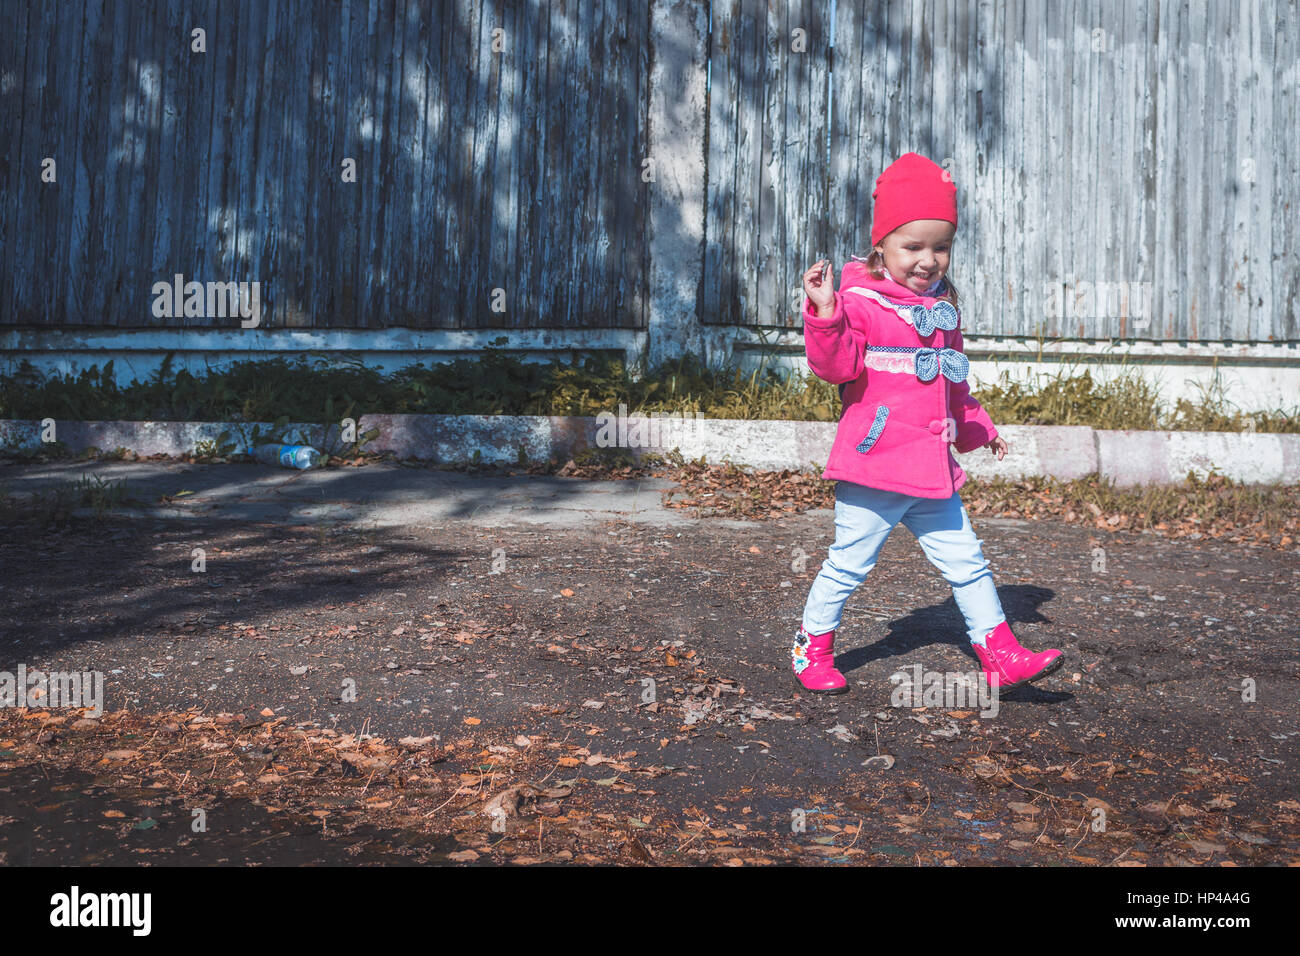 Little girl in a pink coat, jeans and pink boots walking in the park. - Stock Image